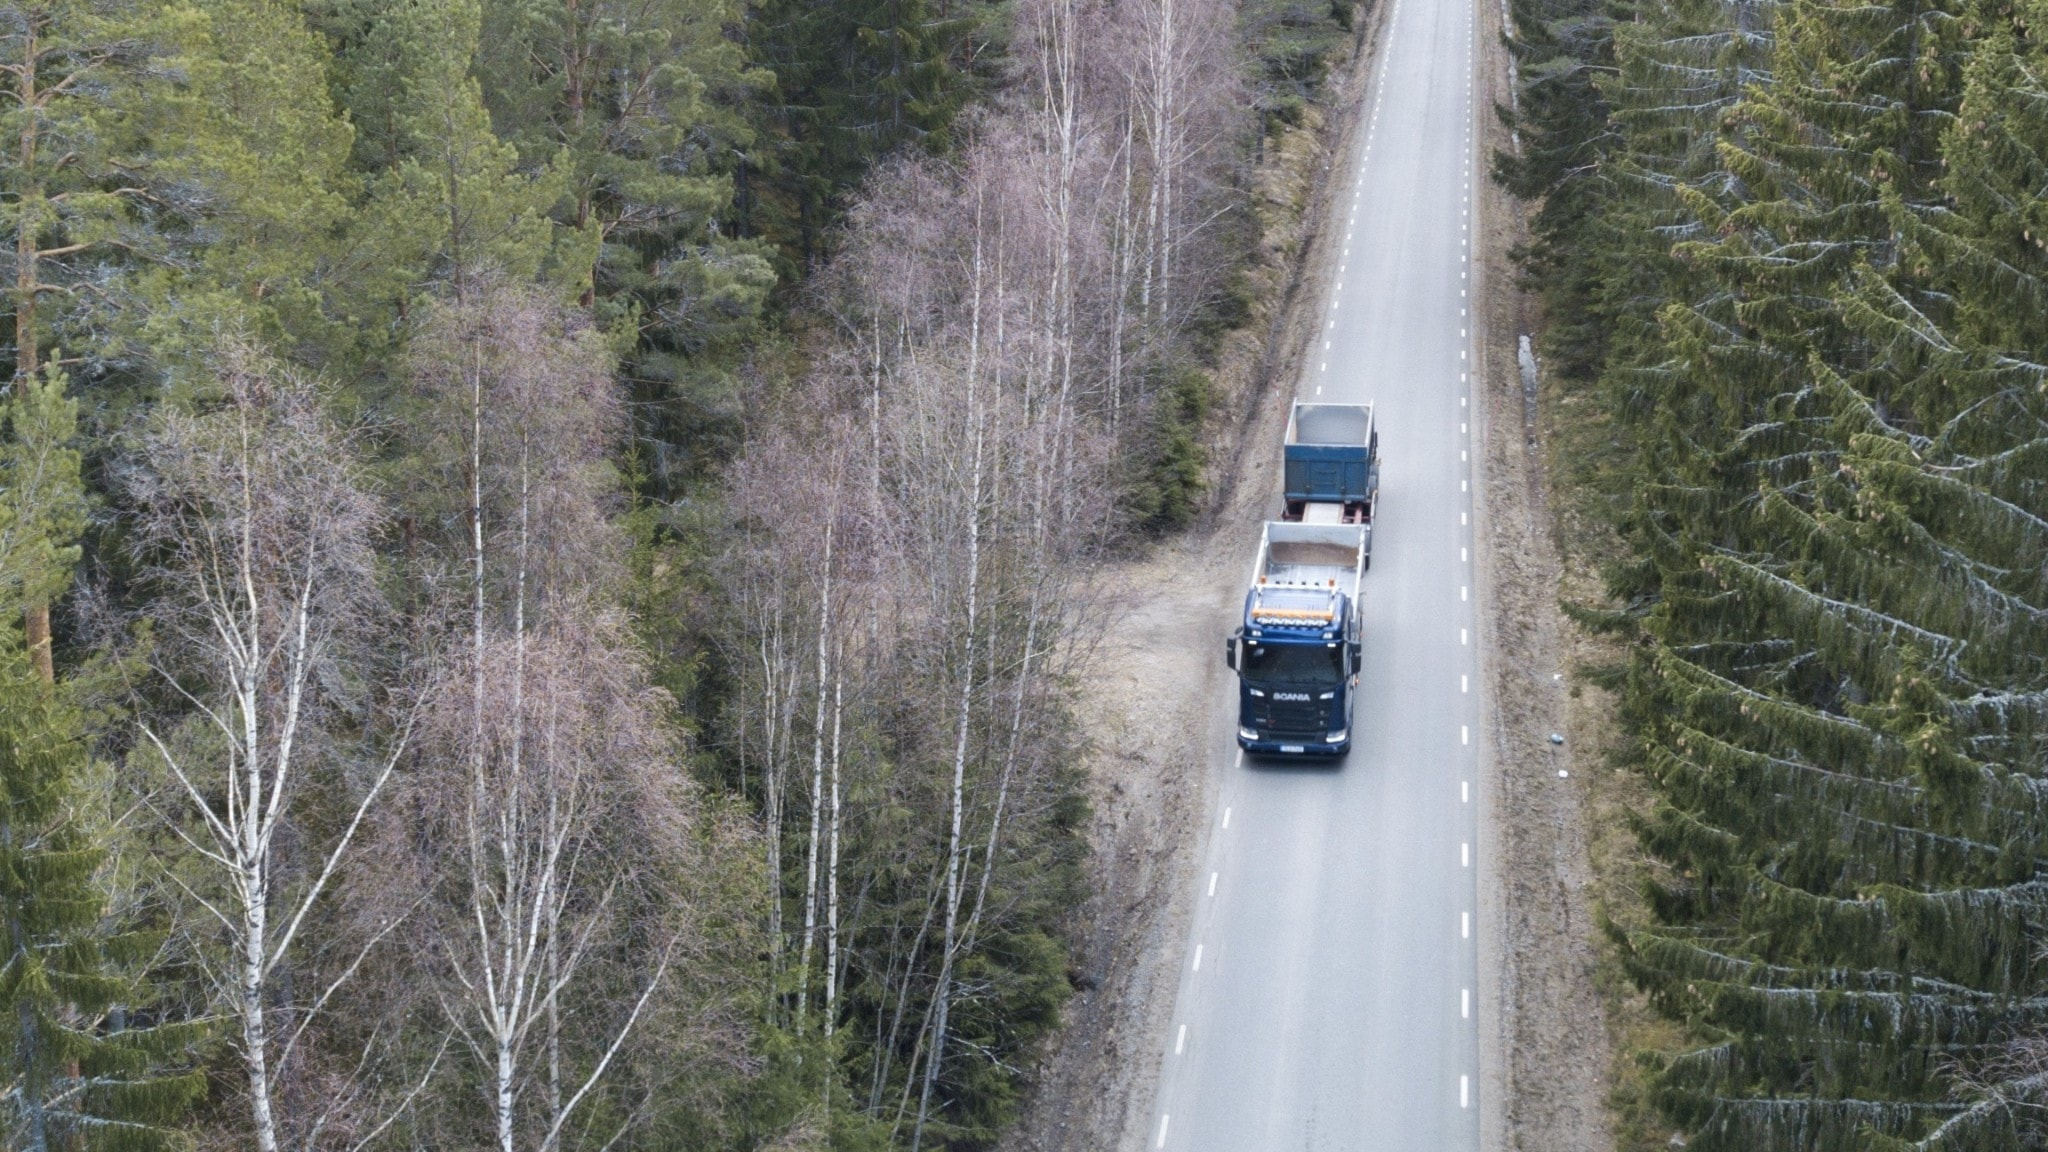 Aerial of a rural road with a lorry on it.